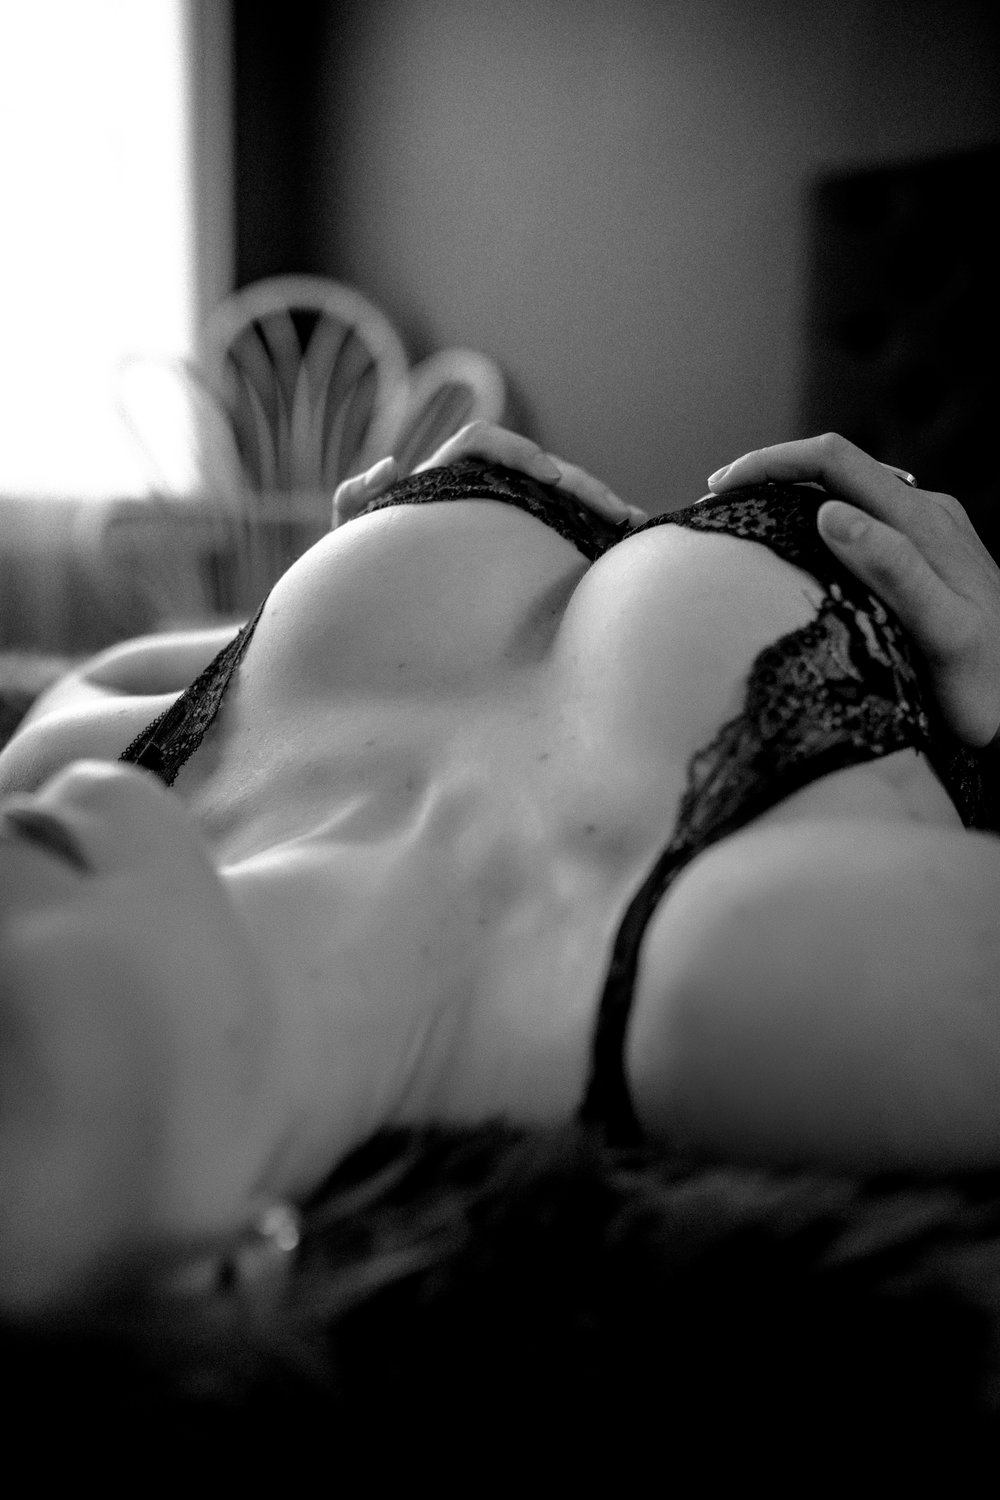 Michigan_Boudoir_Photography_ButterflyBoudoir13.jpg